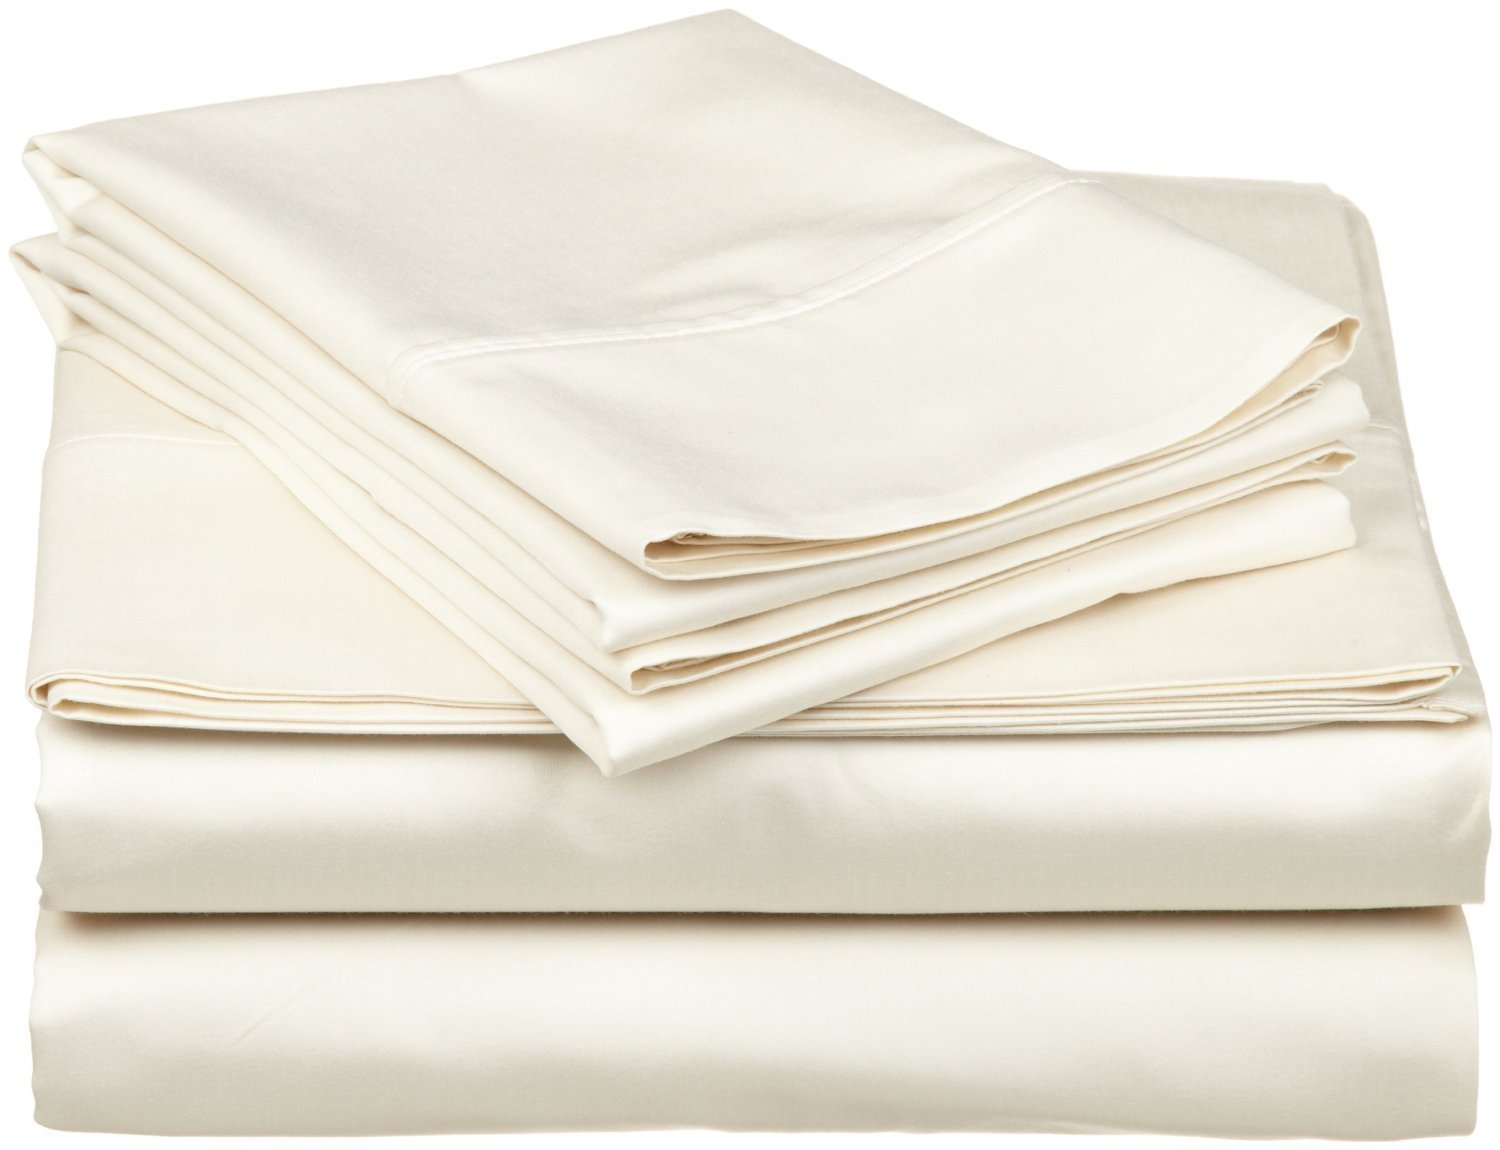 Rajlinen 600 Thread Count Luxurious 100% Egyptian Cotton Set of 4 Pcs (1 Fitted sheet,1 Flat Sheet, 2 Pillows covers) by (Ivory Solid, 48'' x 75'' +12'' Drop)